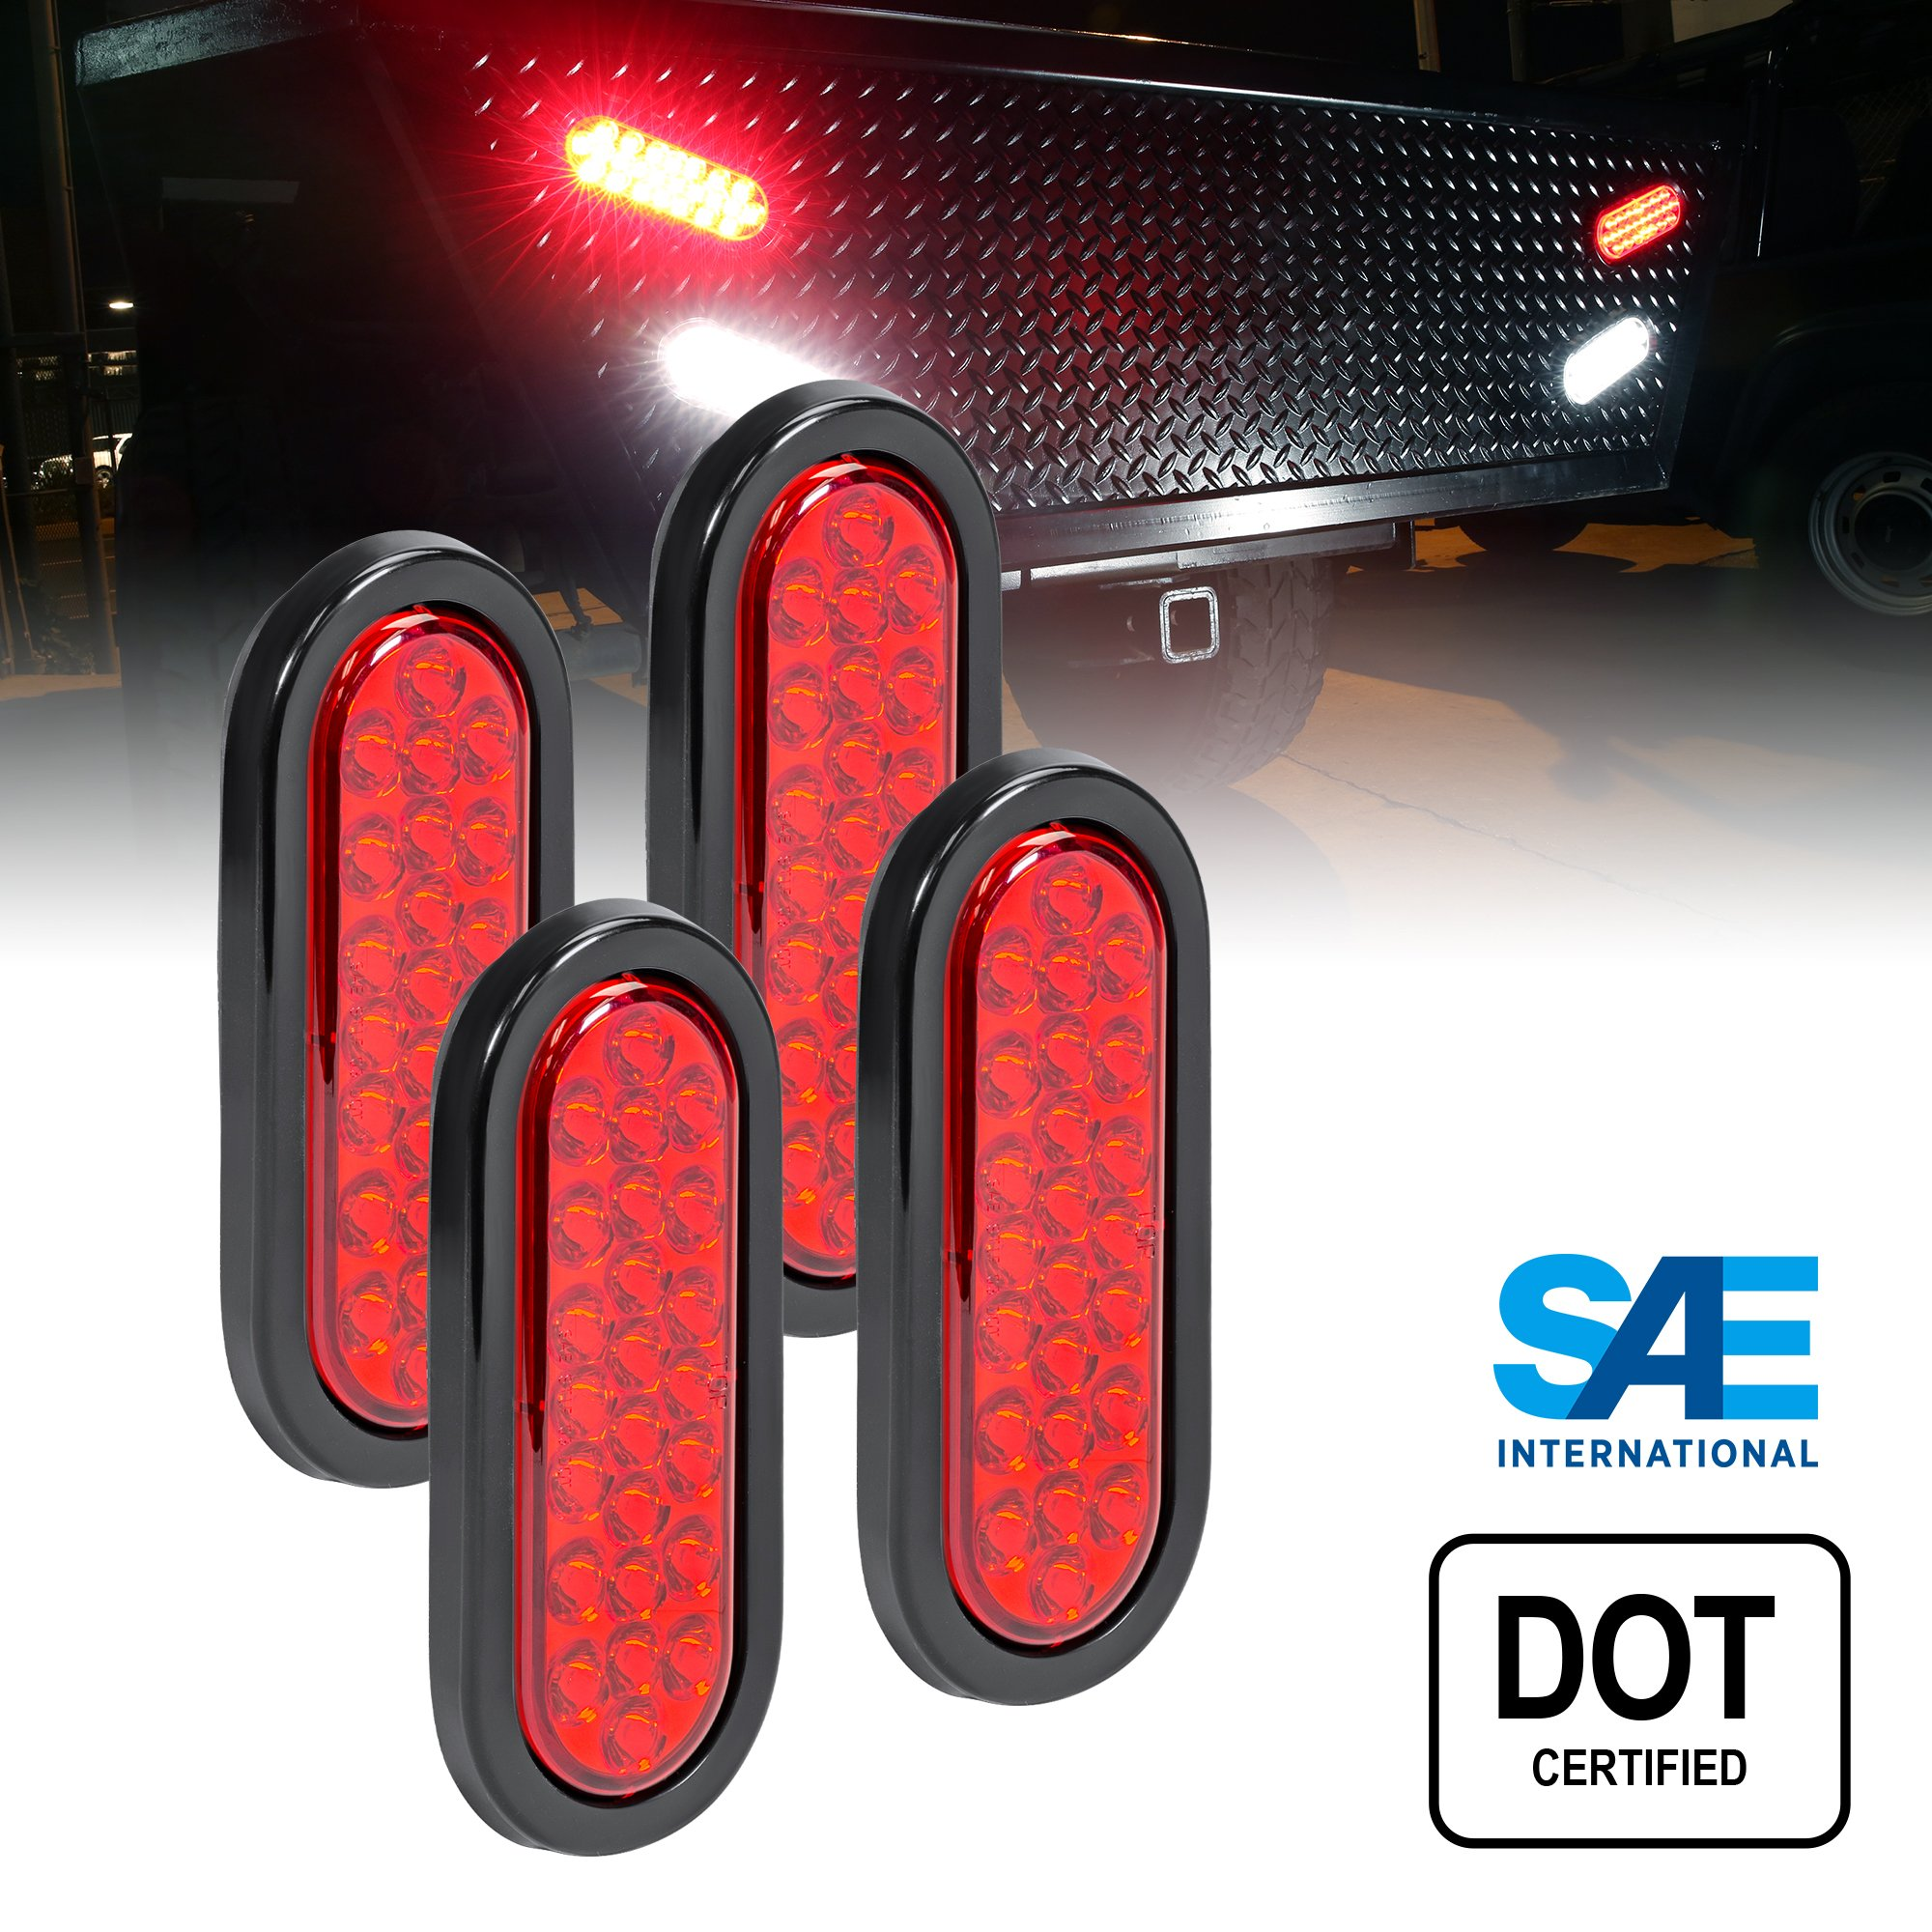 4pc 6'' Oval Red 24 LED Trailer Tail Lights [DOT Certified] [Grommet & Plug Included] [IP67 Waterproof] Turn Stop Brake Trailer Lights for RV Jeep Trucks